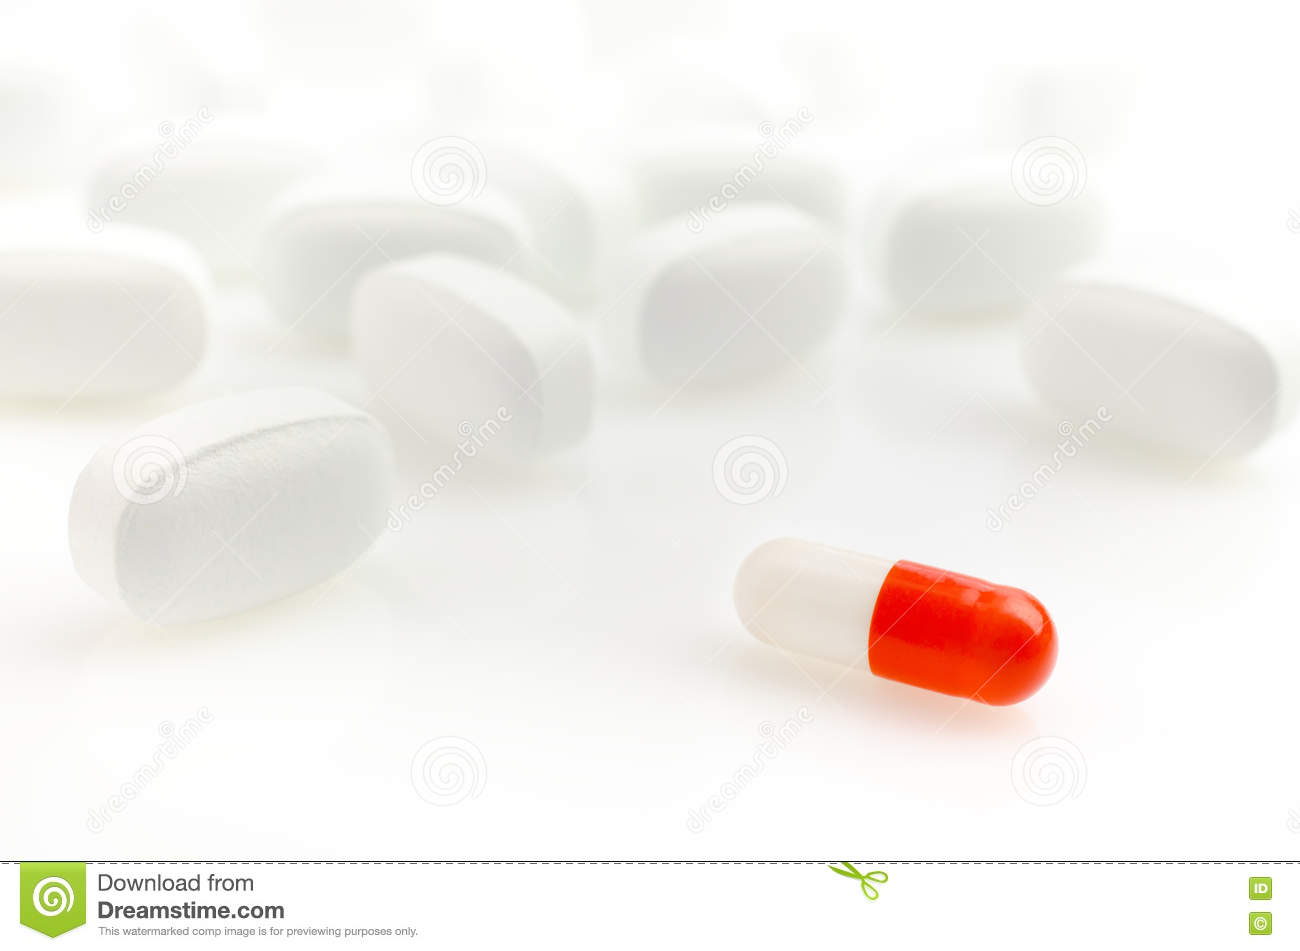 red and white capsule pills with background royaltyfree